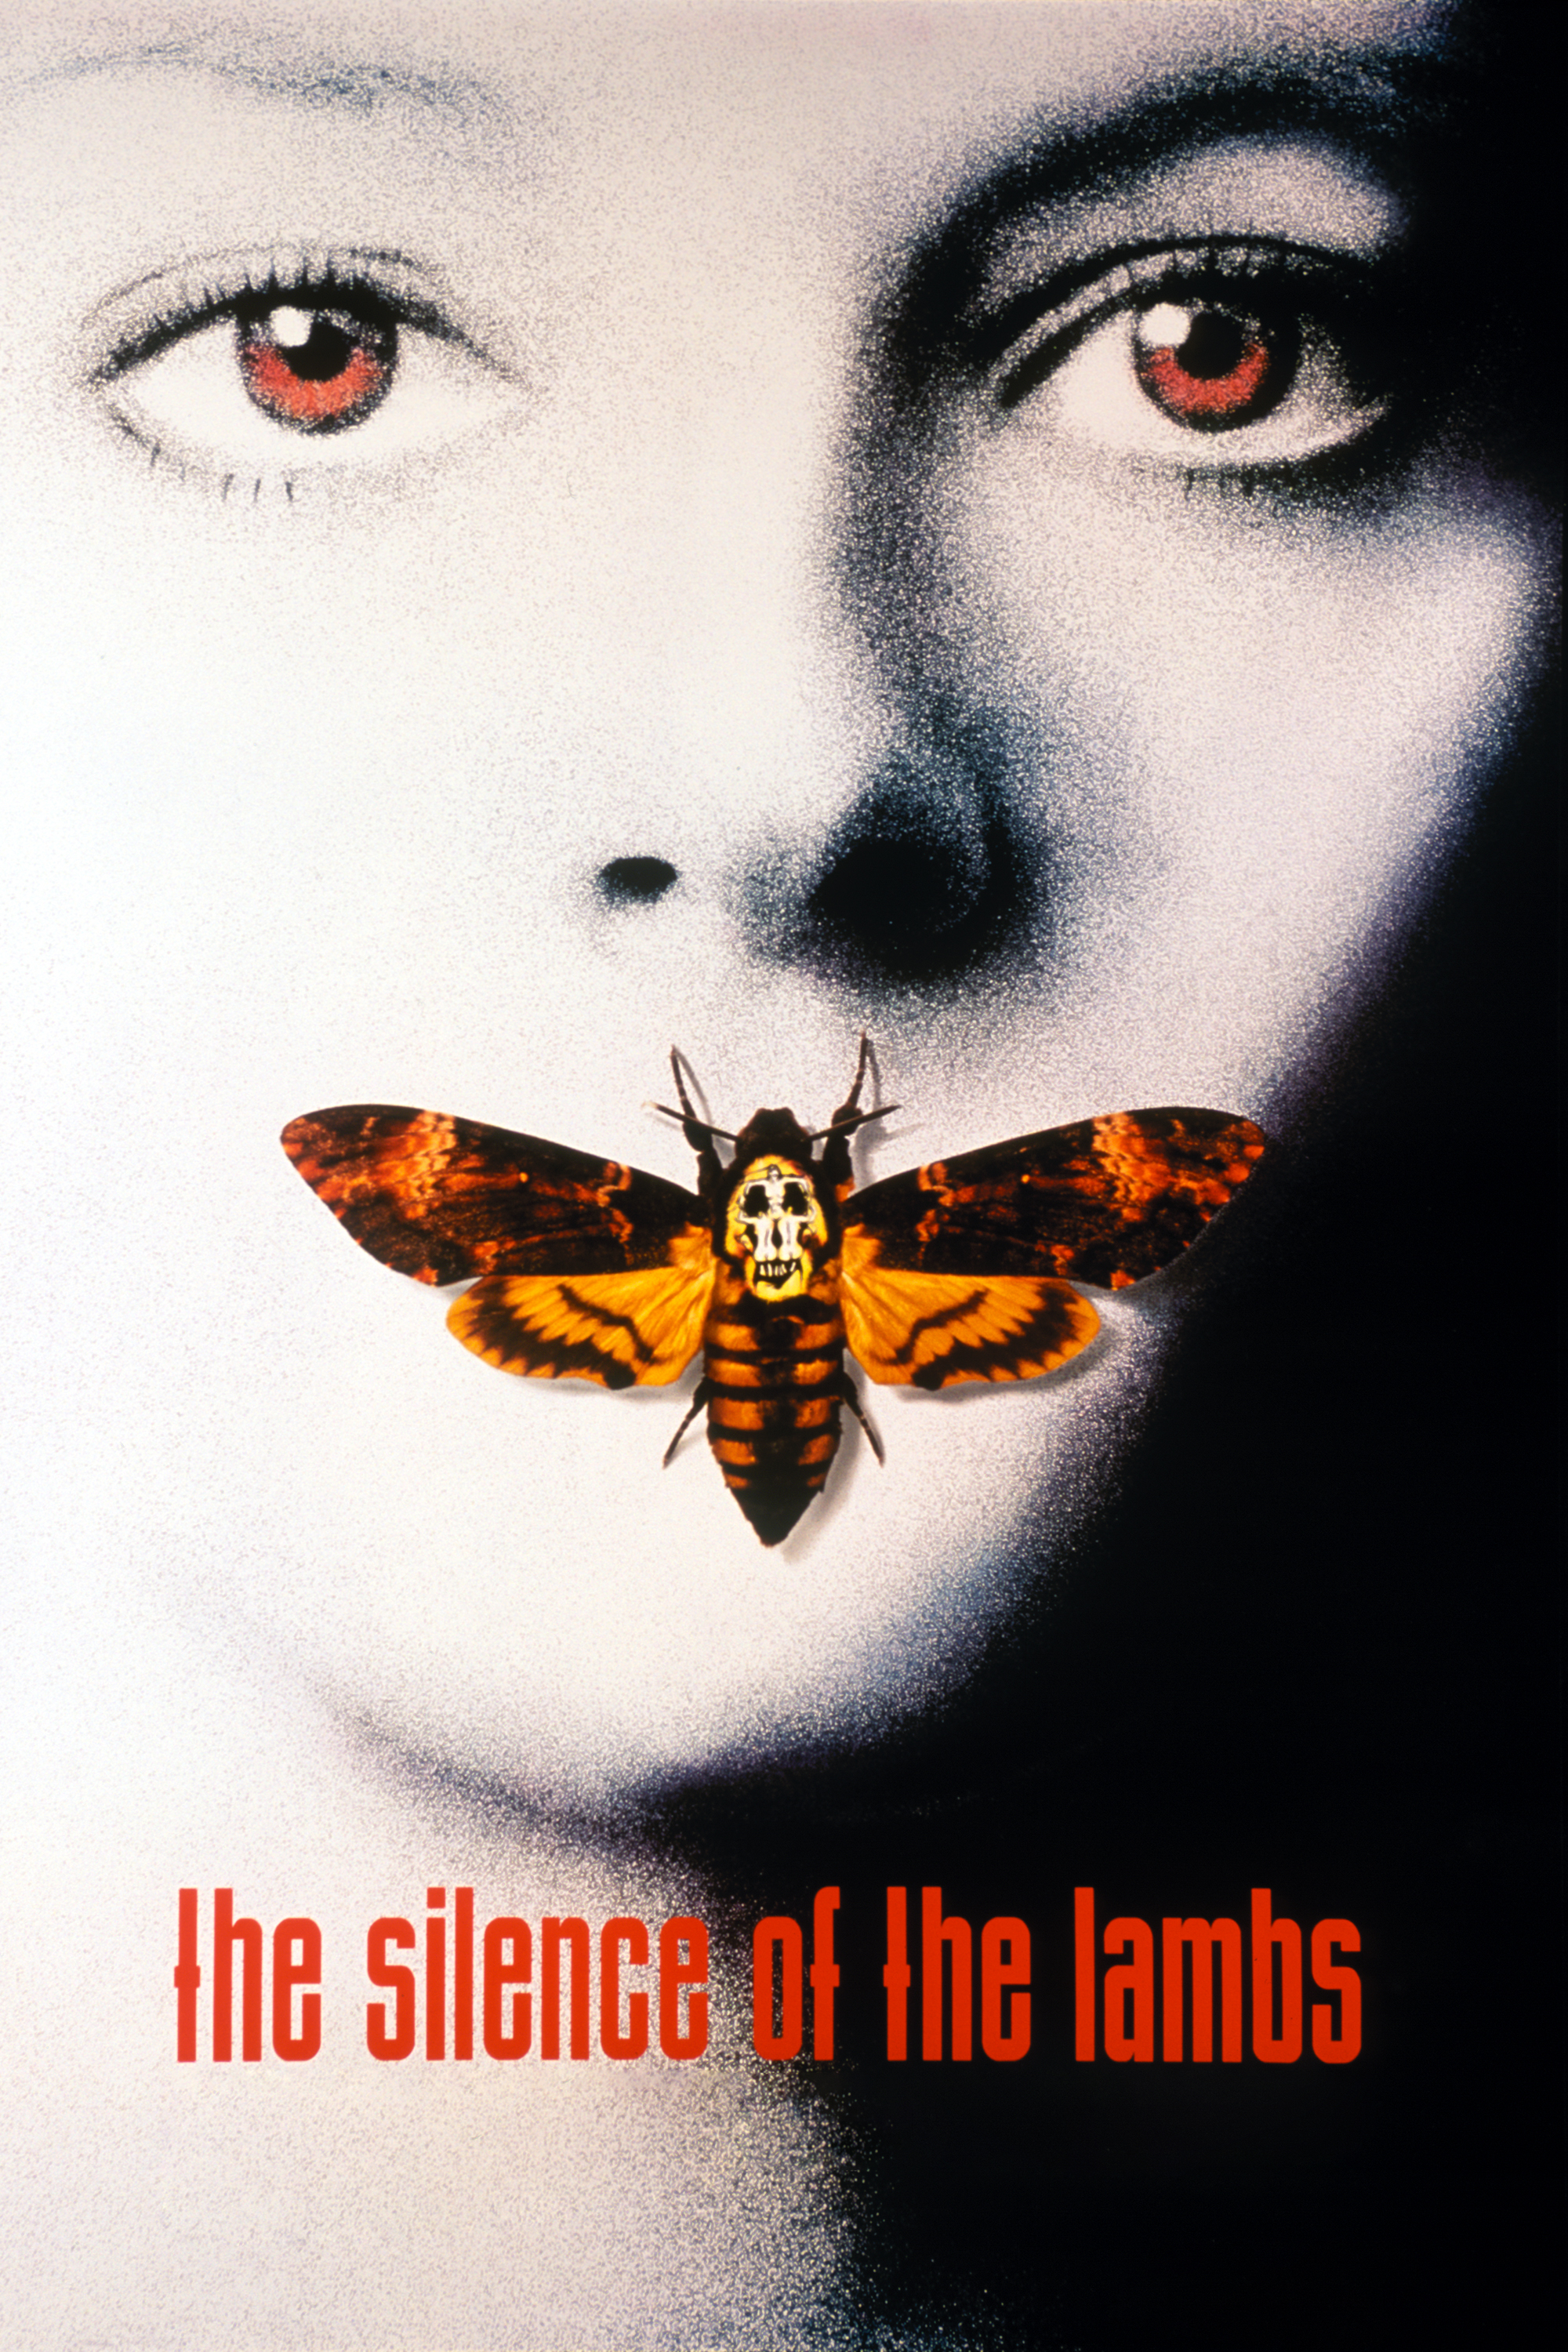 The Silence of the Lambs - Where to Watch and Stream - TV Guide